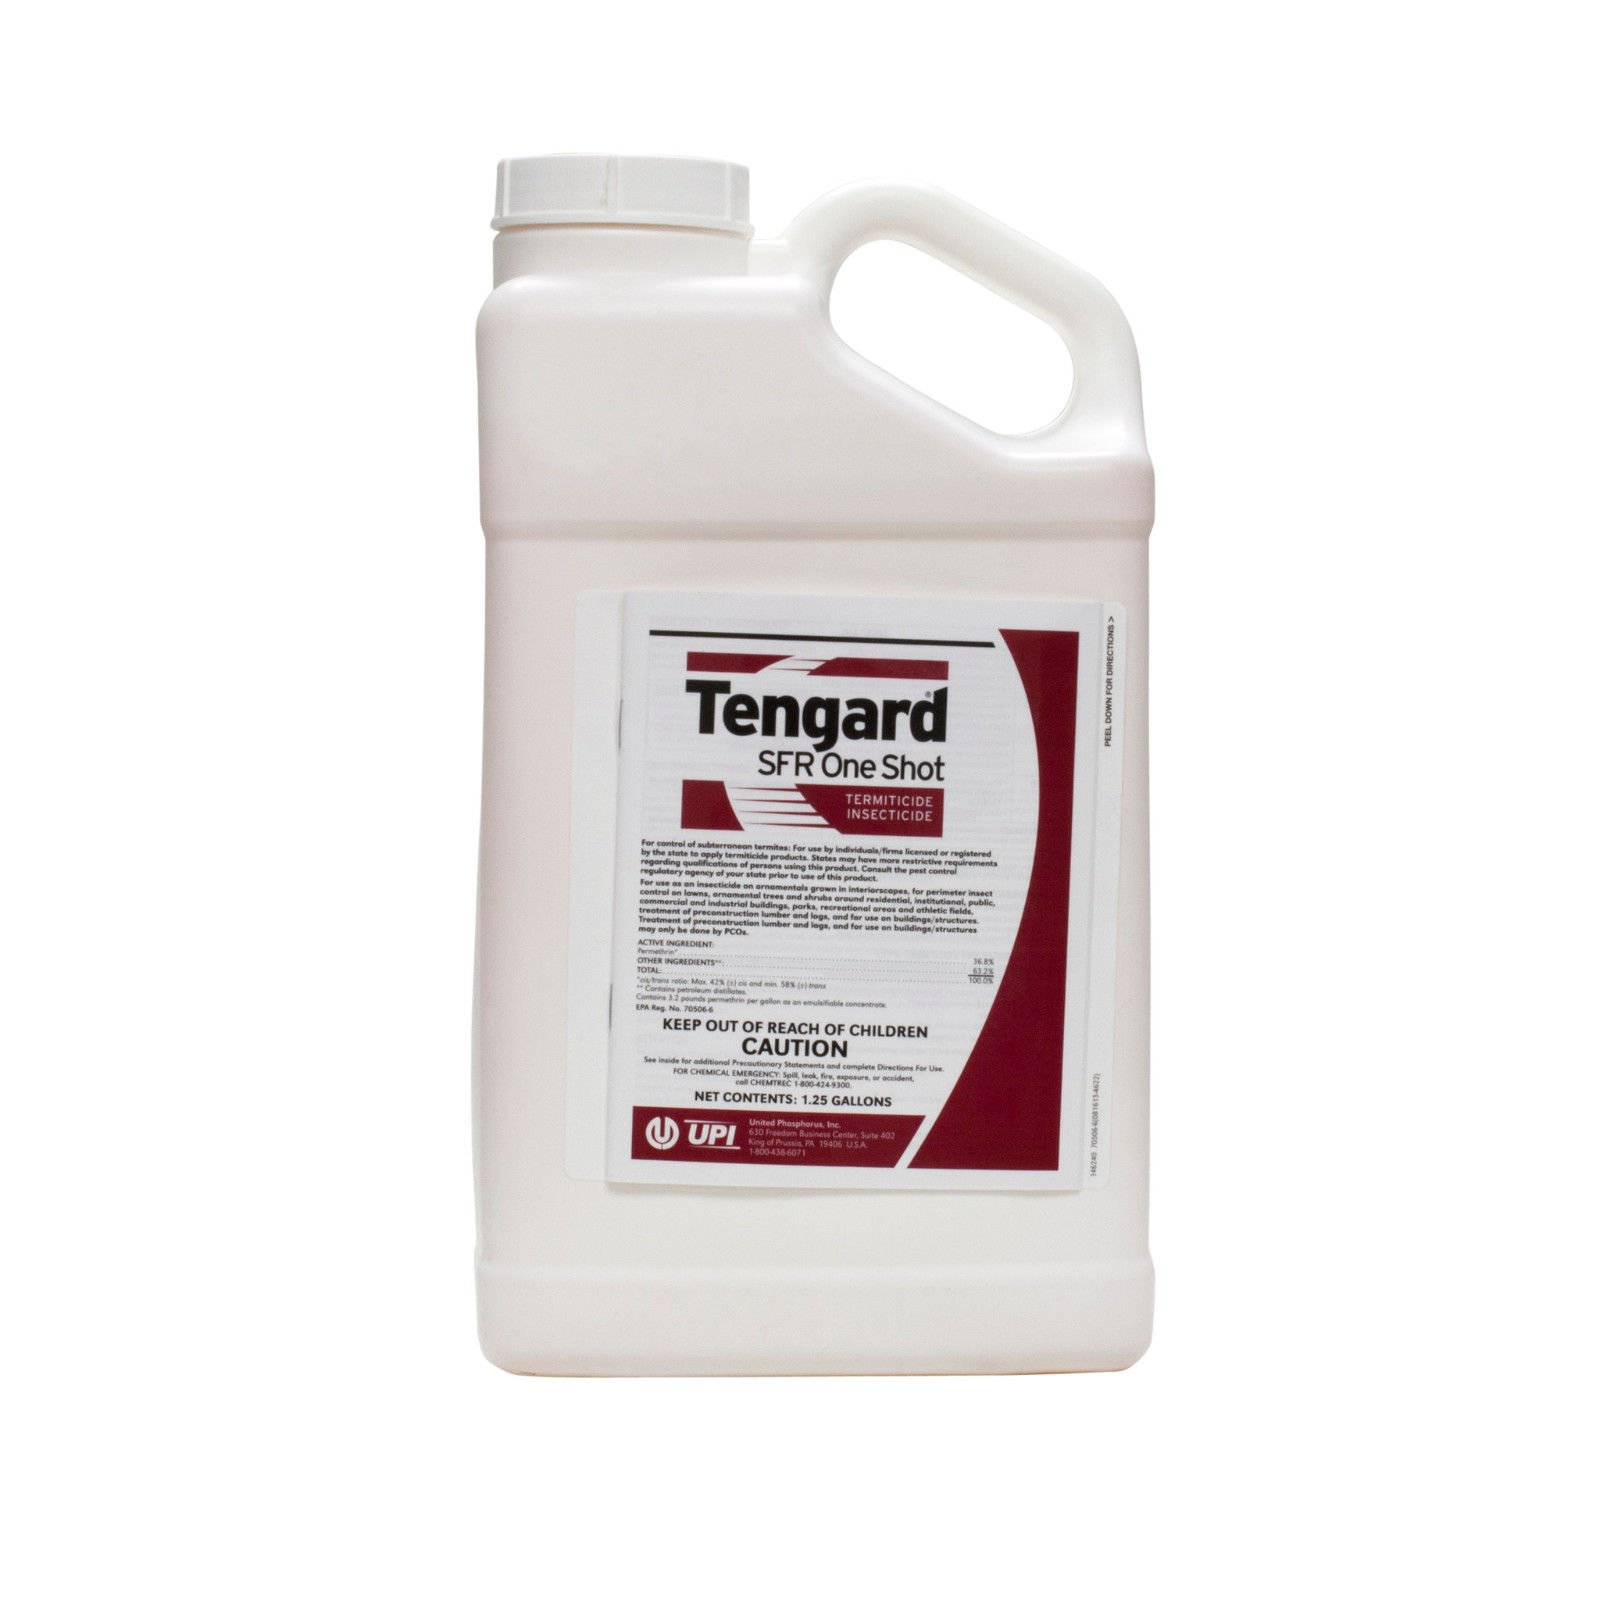 Tengard Sfr Termiticide Insecticide 1.25 Gal ***Not For Sale To: CA, New York, SC, CT, VT, MA by UPI